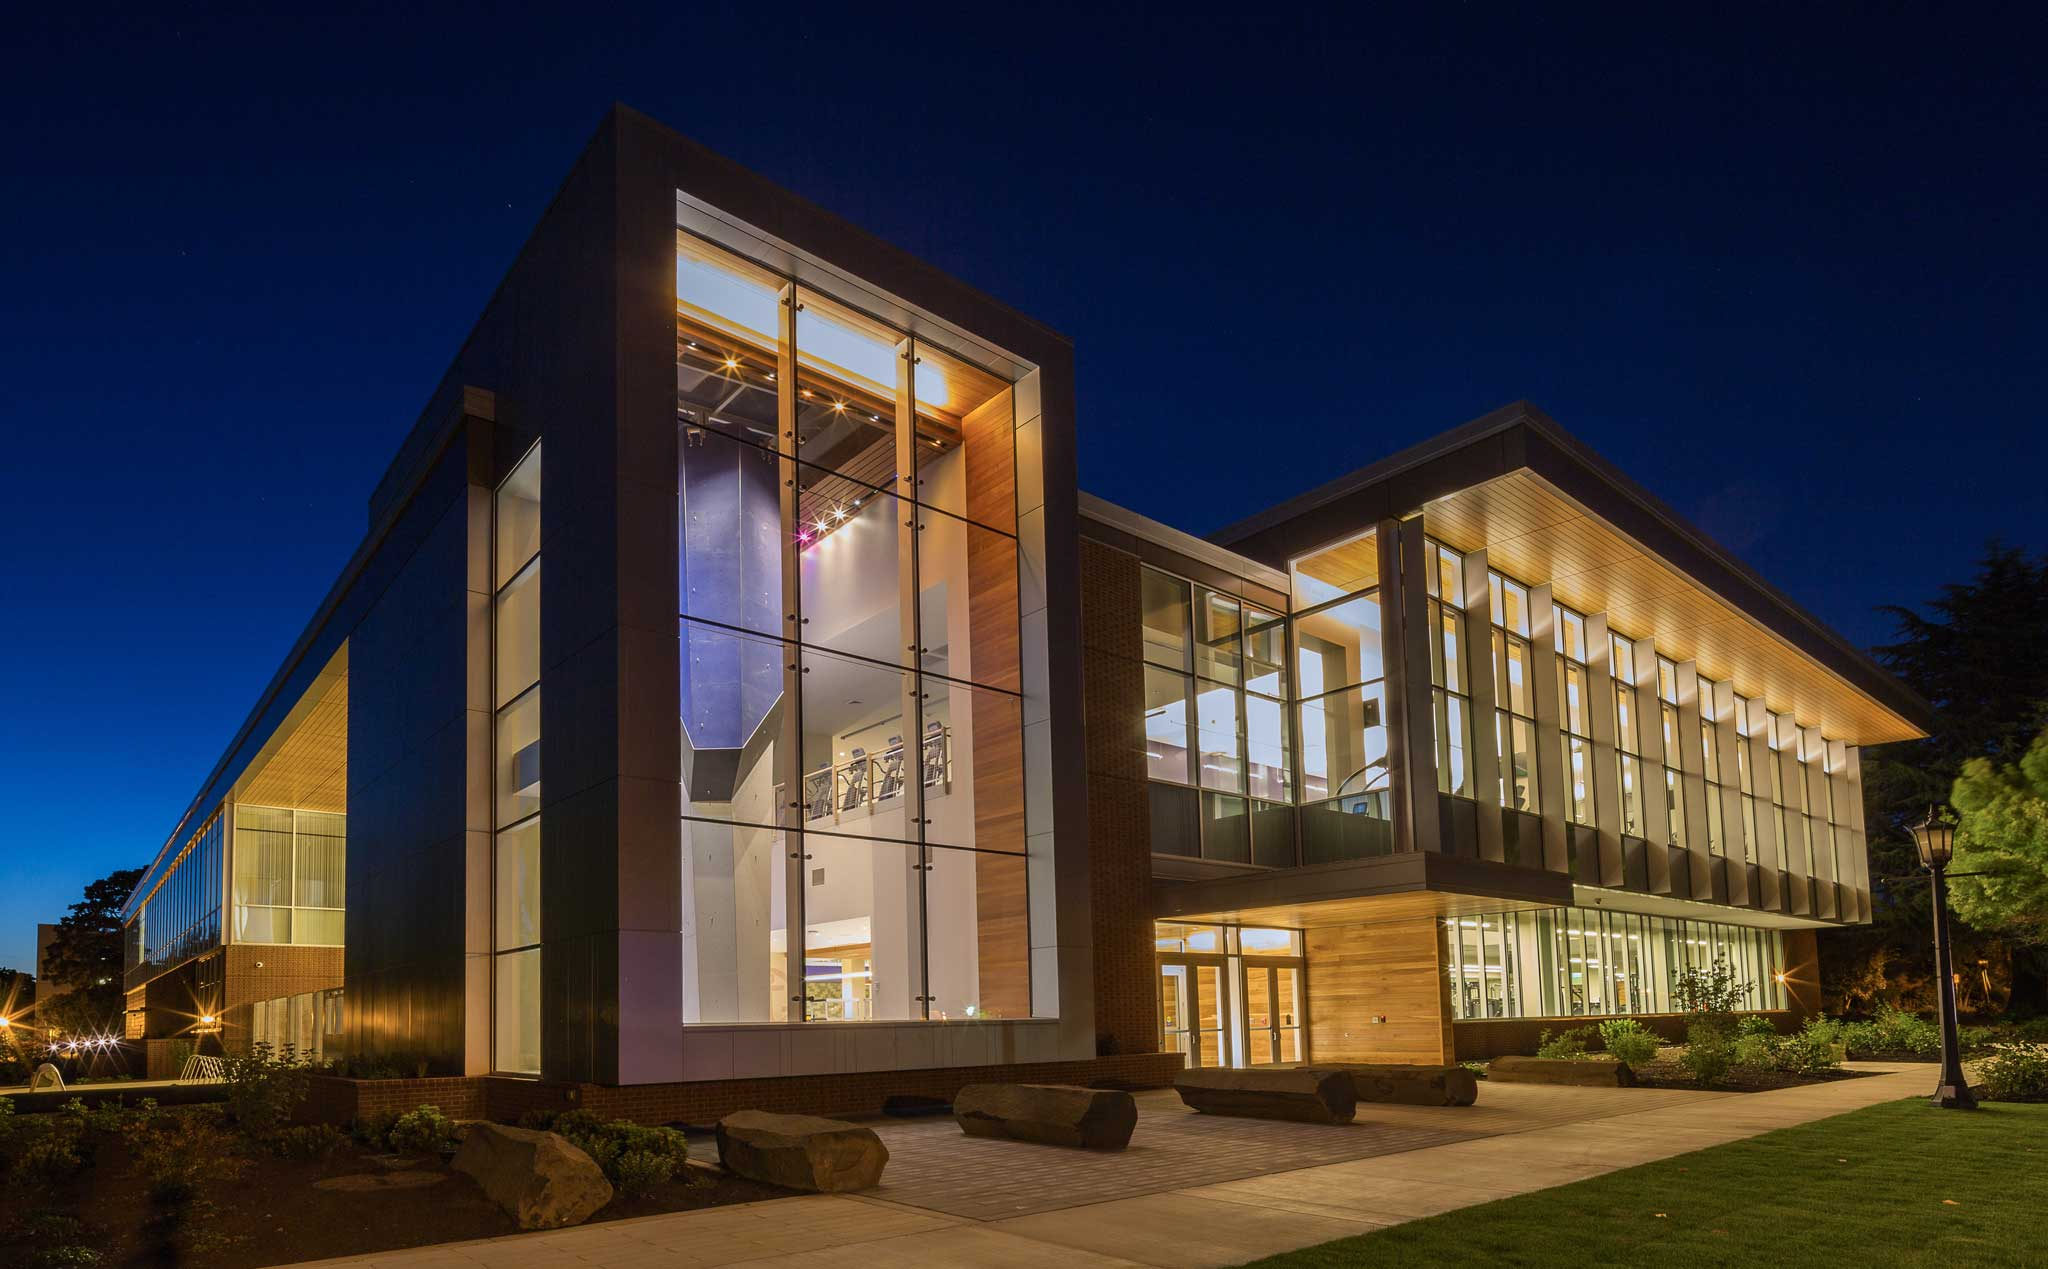 Beauchamp Athletic Facility Architectural Lighting Design